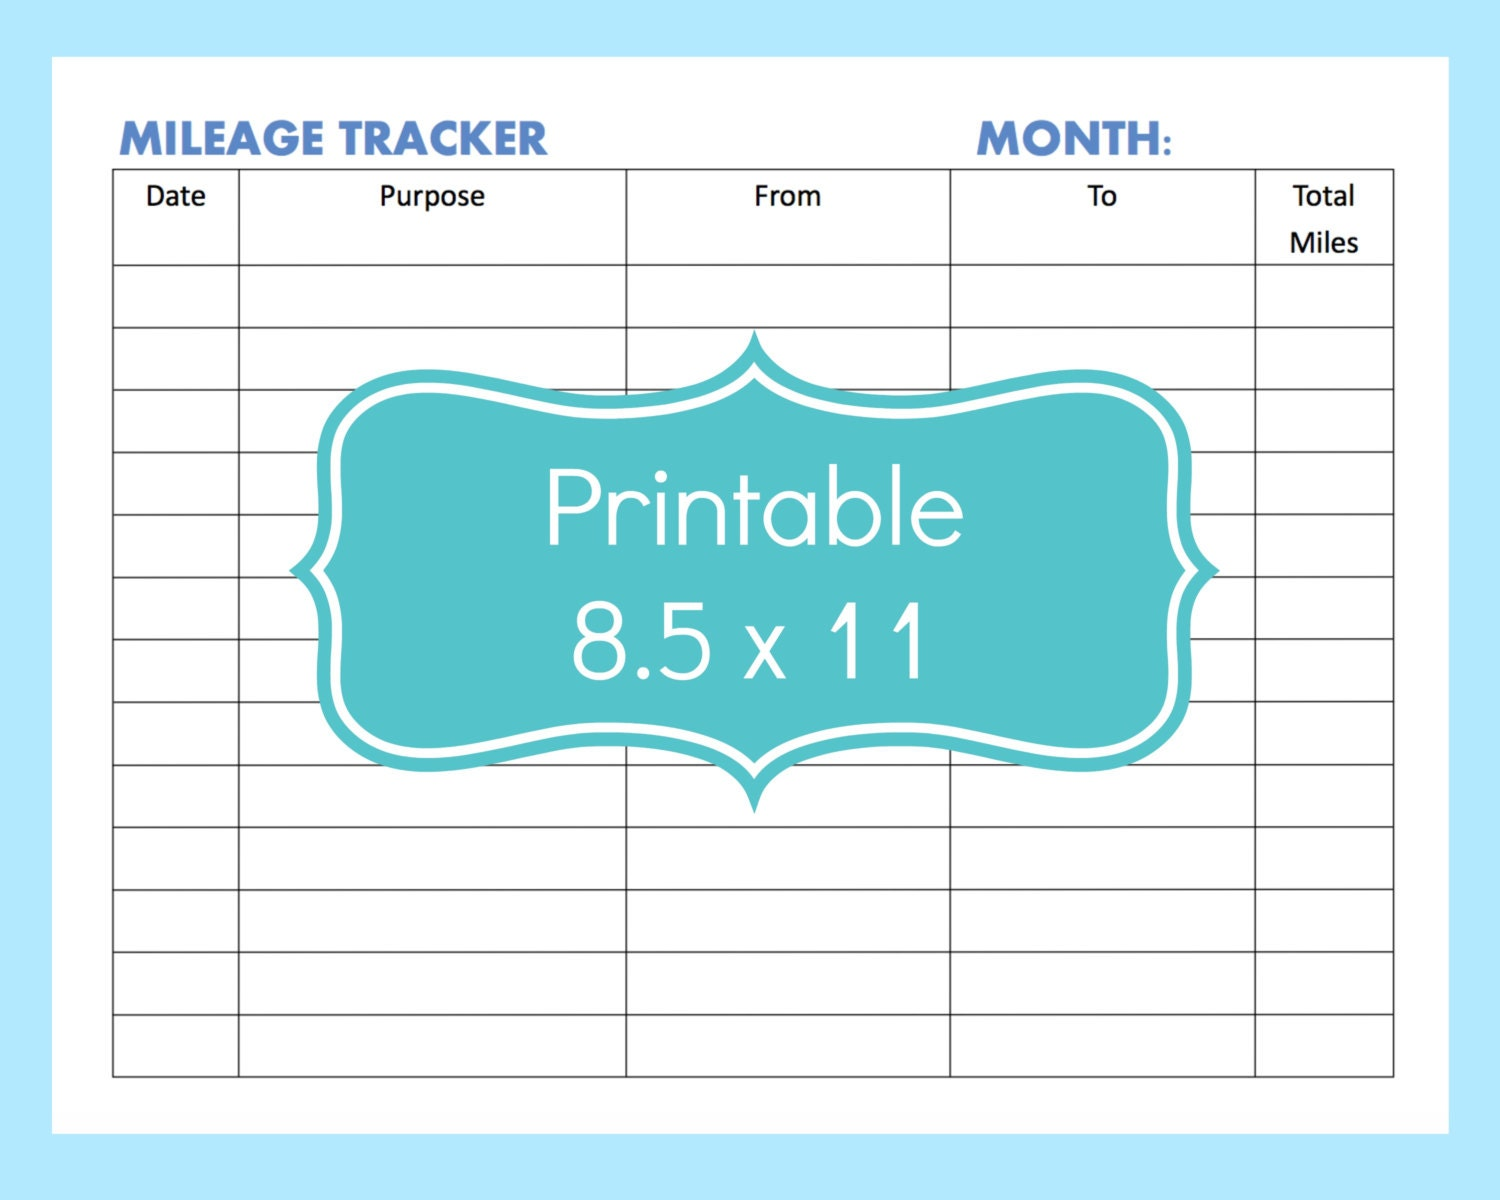 mileage tracker form printable printable mileage tracker. Black Bedroom Furniture Sets. Home Design Ideas